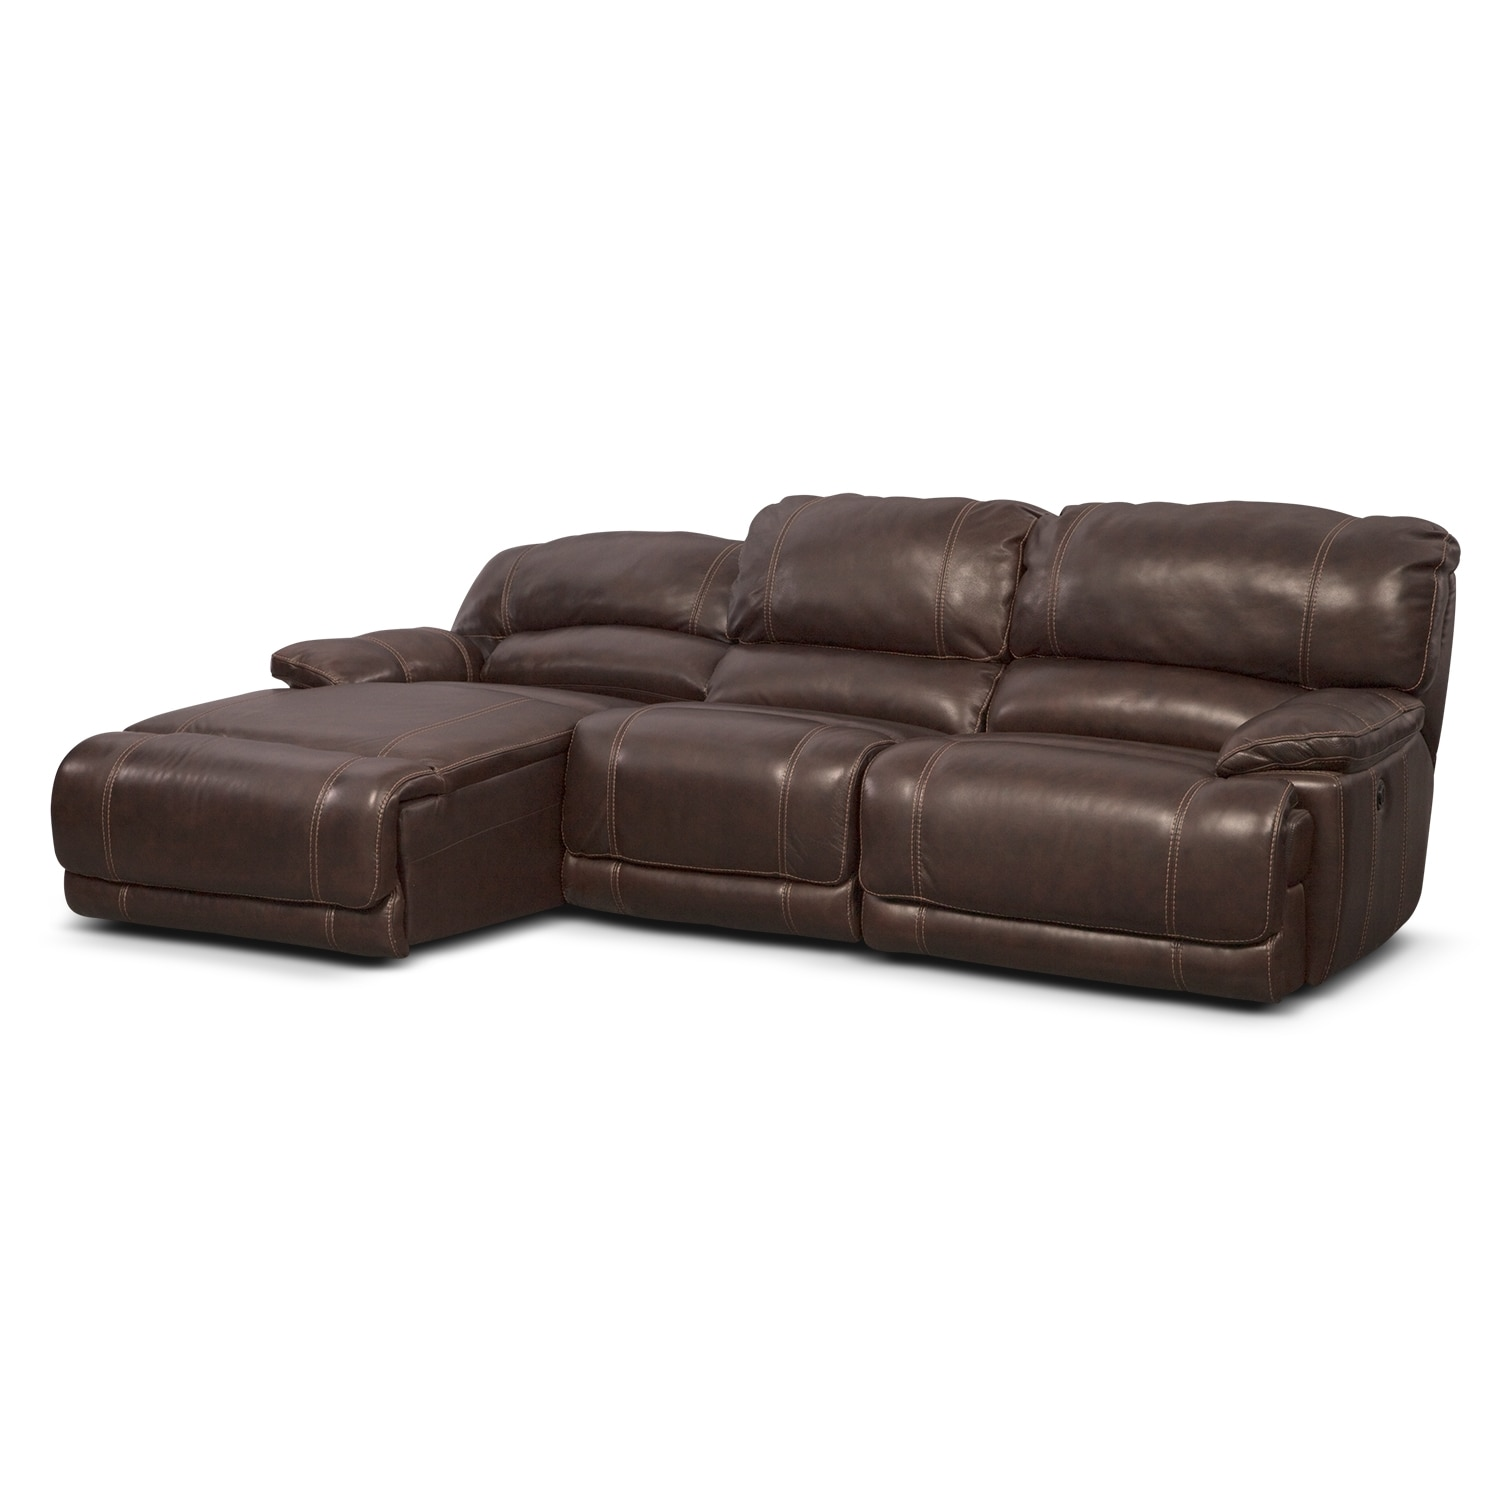 St malo 3 piece power reclining sectional with left for Brown sectionals with chaise